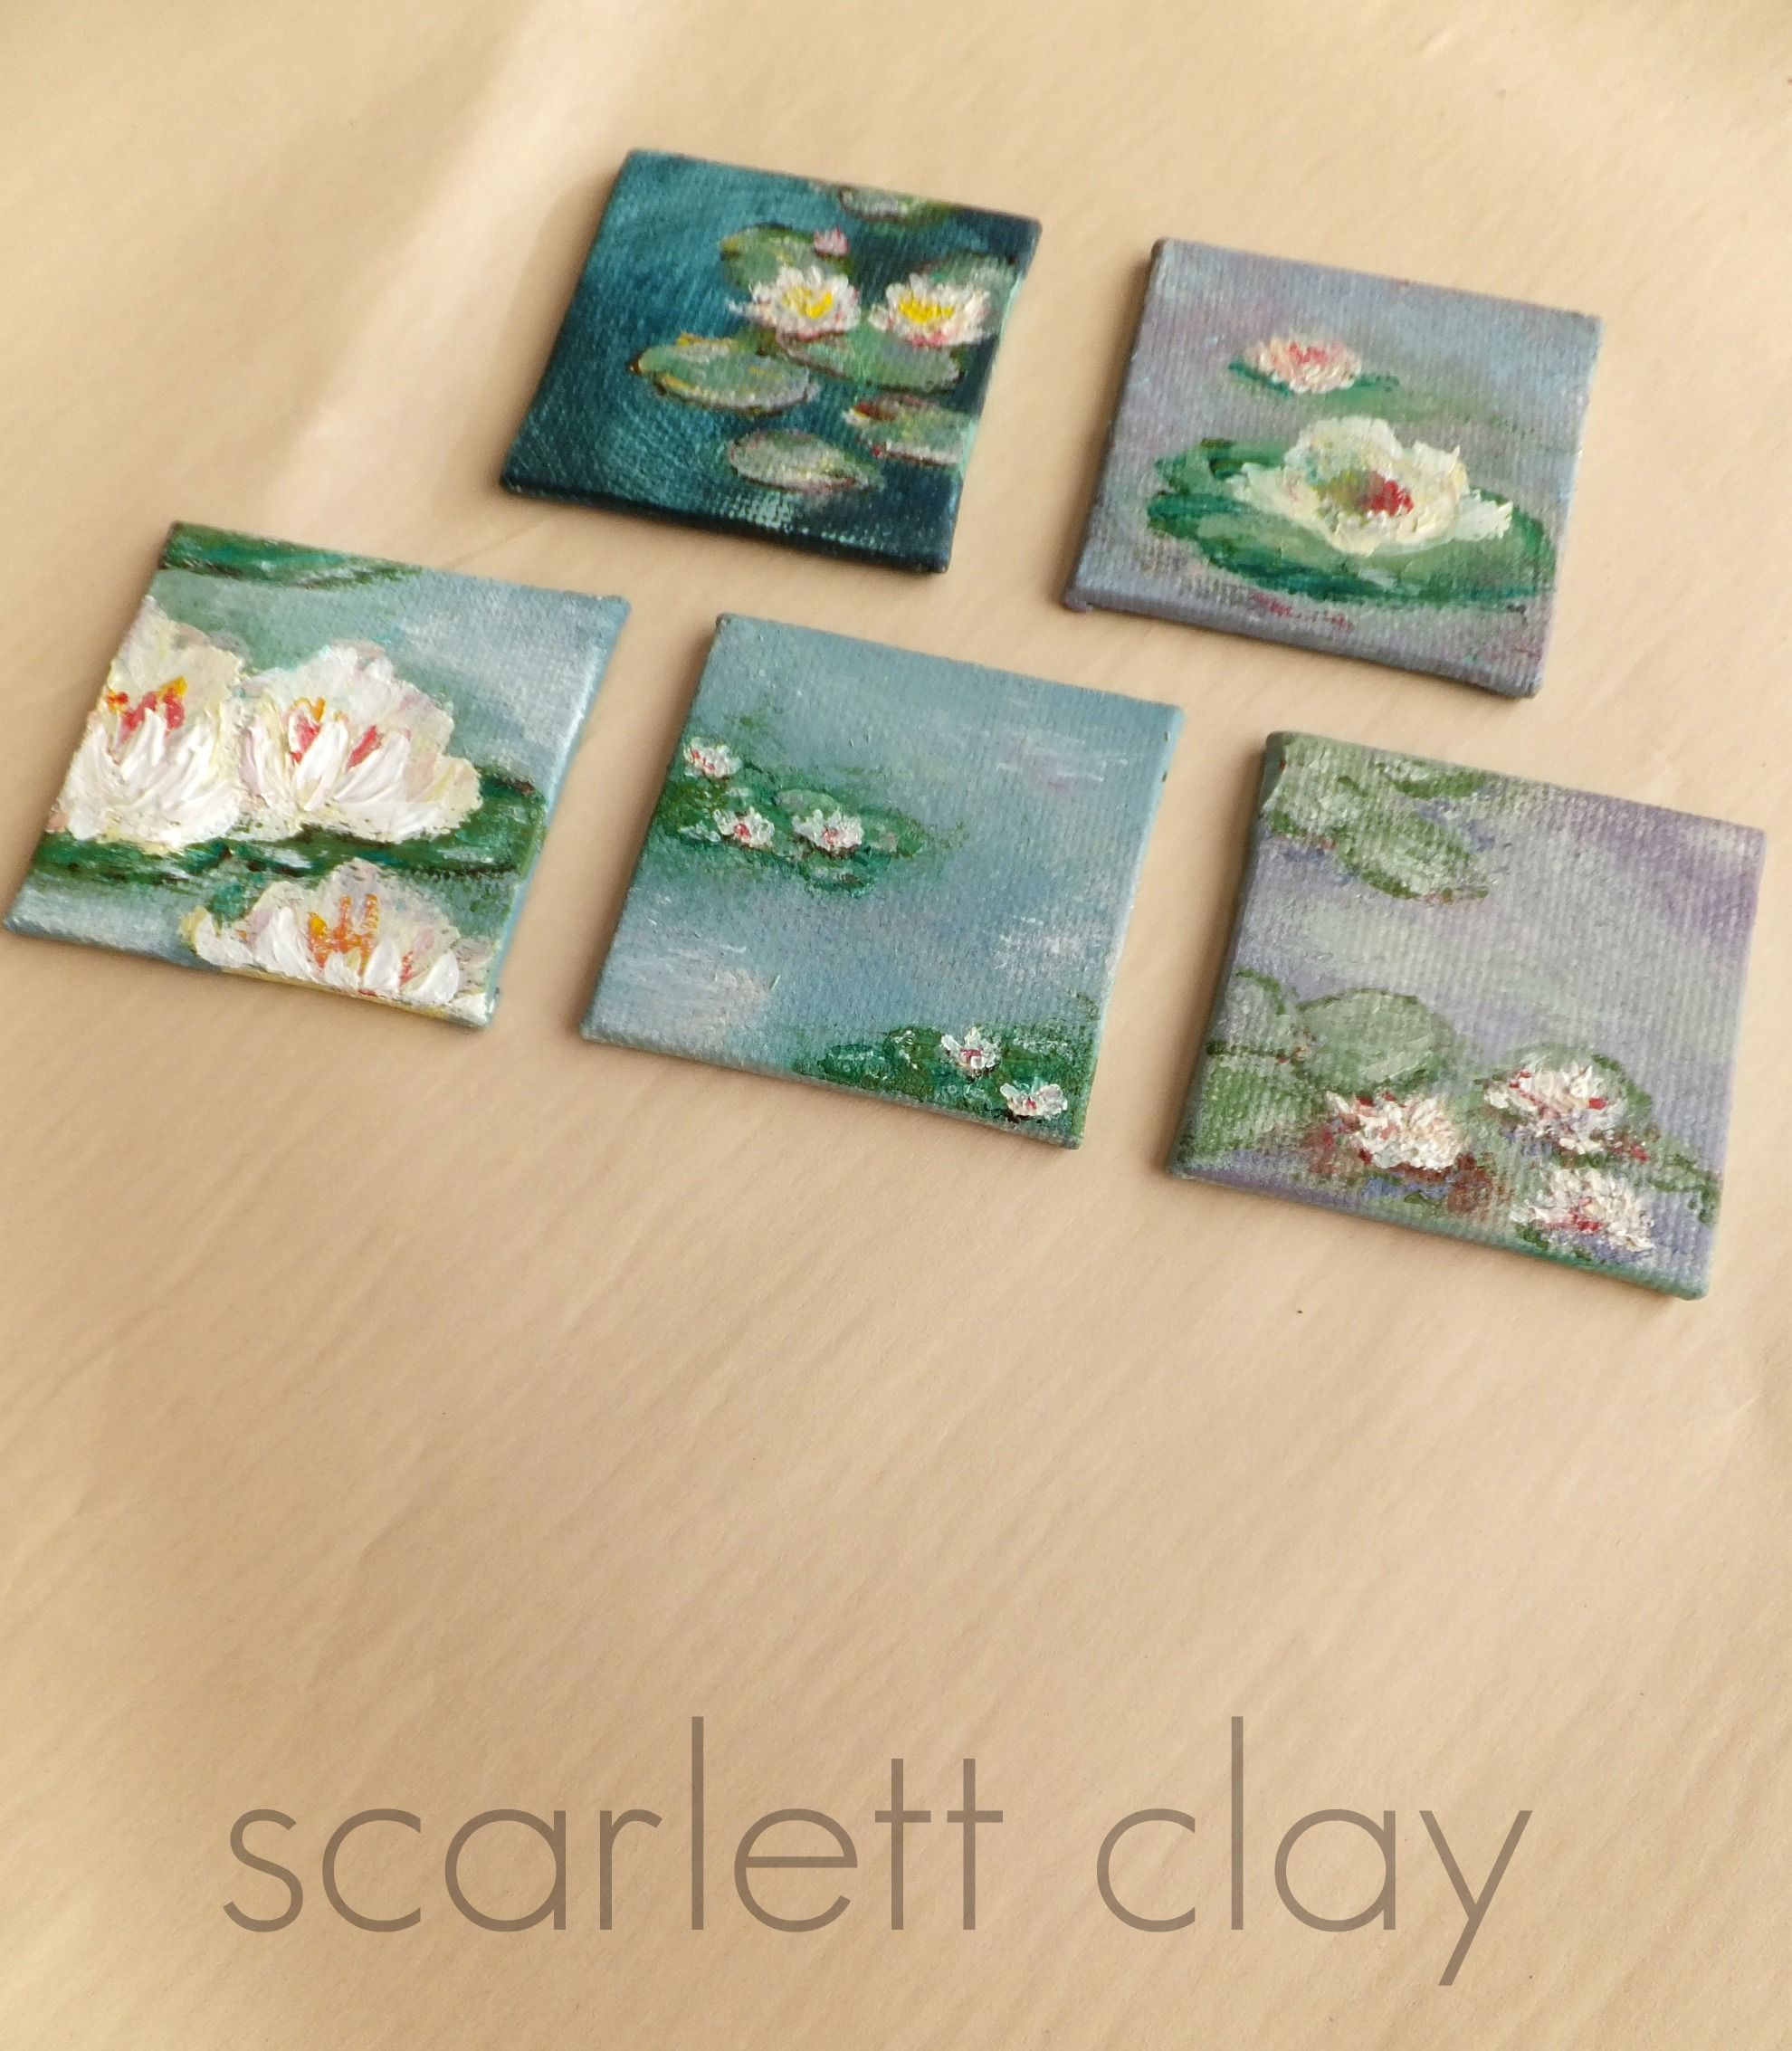 Mini Monets 1 Boo Ful Pinterest Painting Monet Paintings And Art